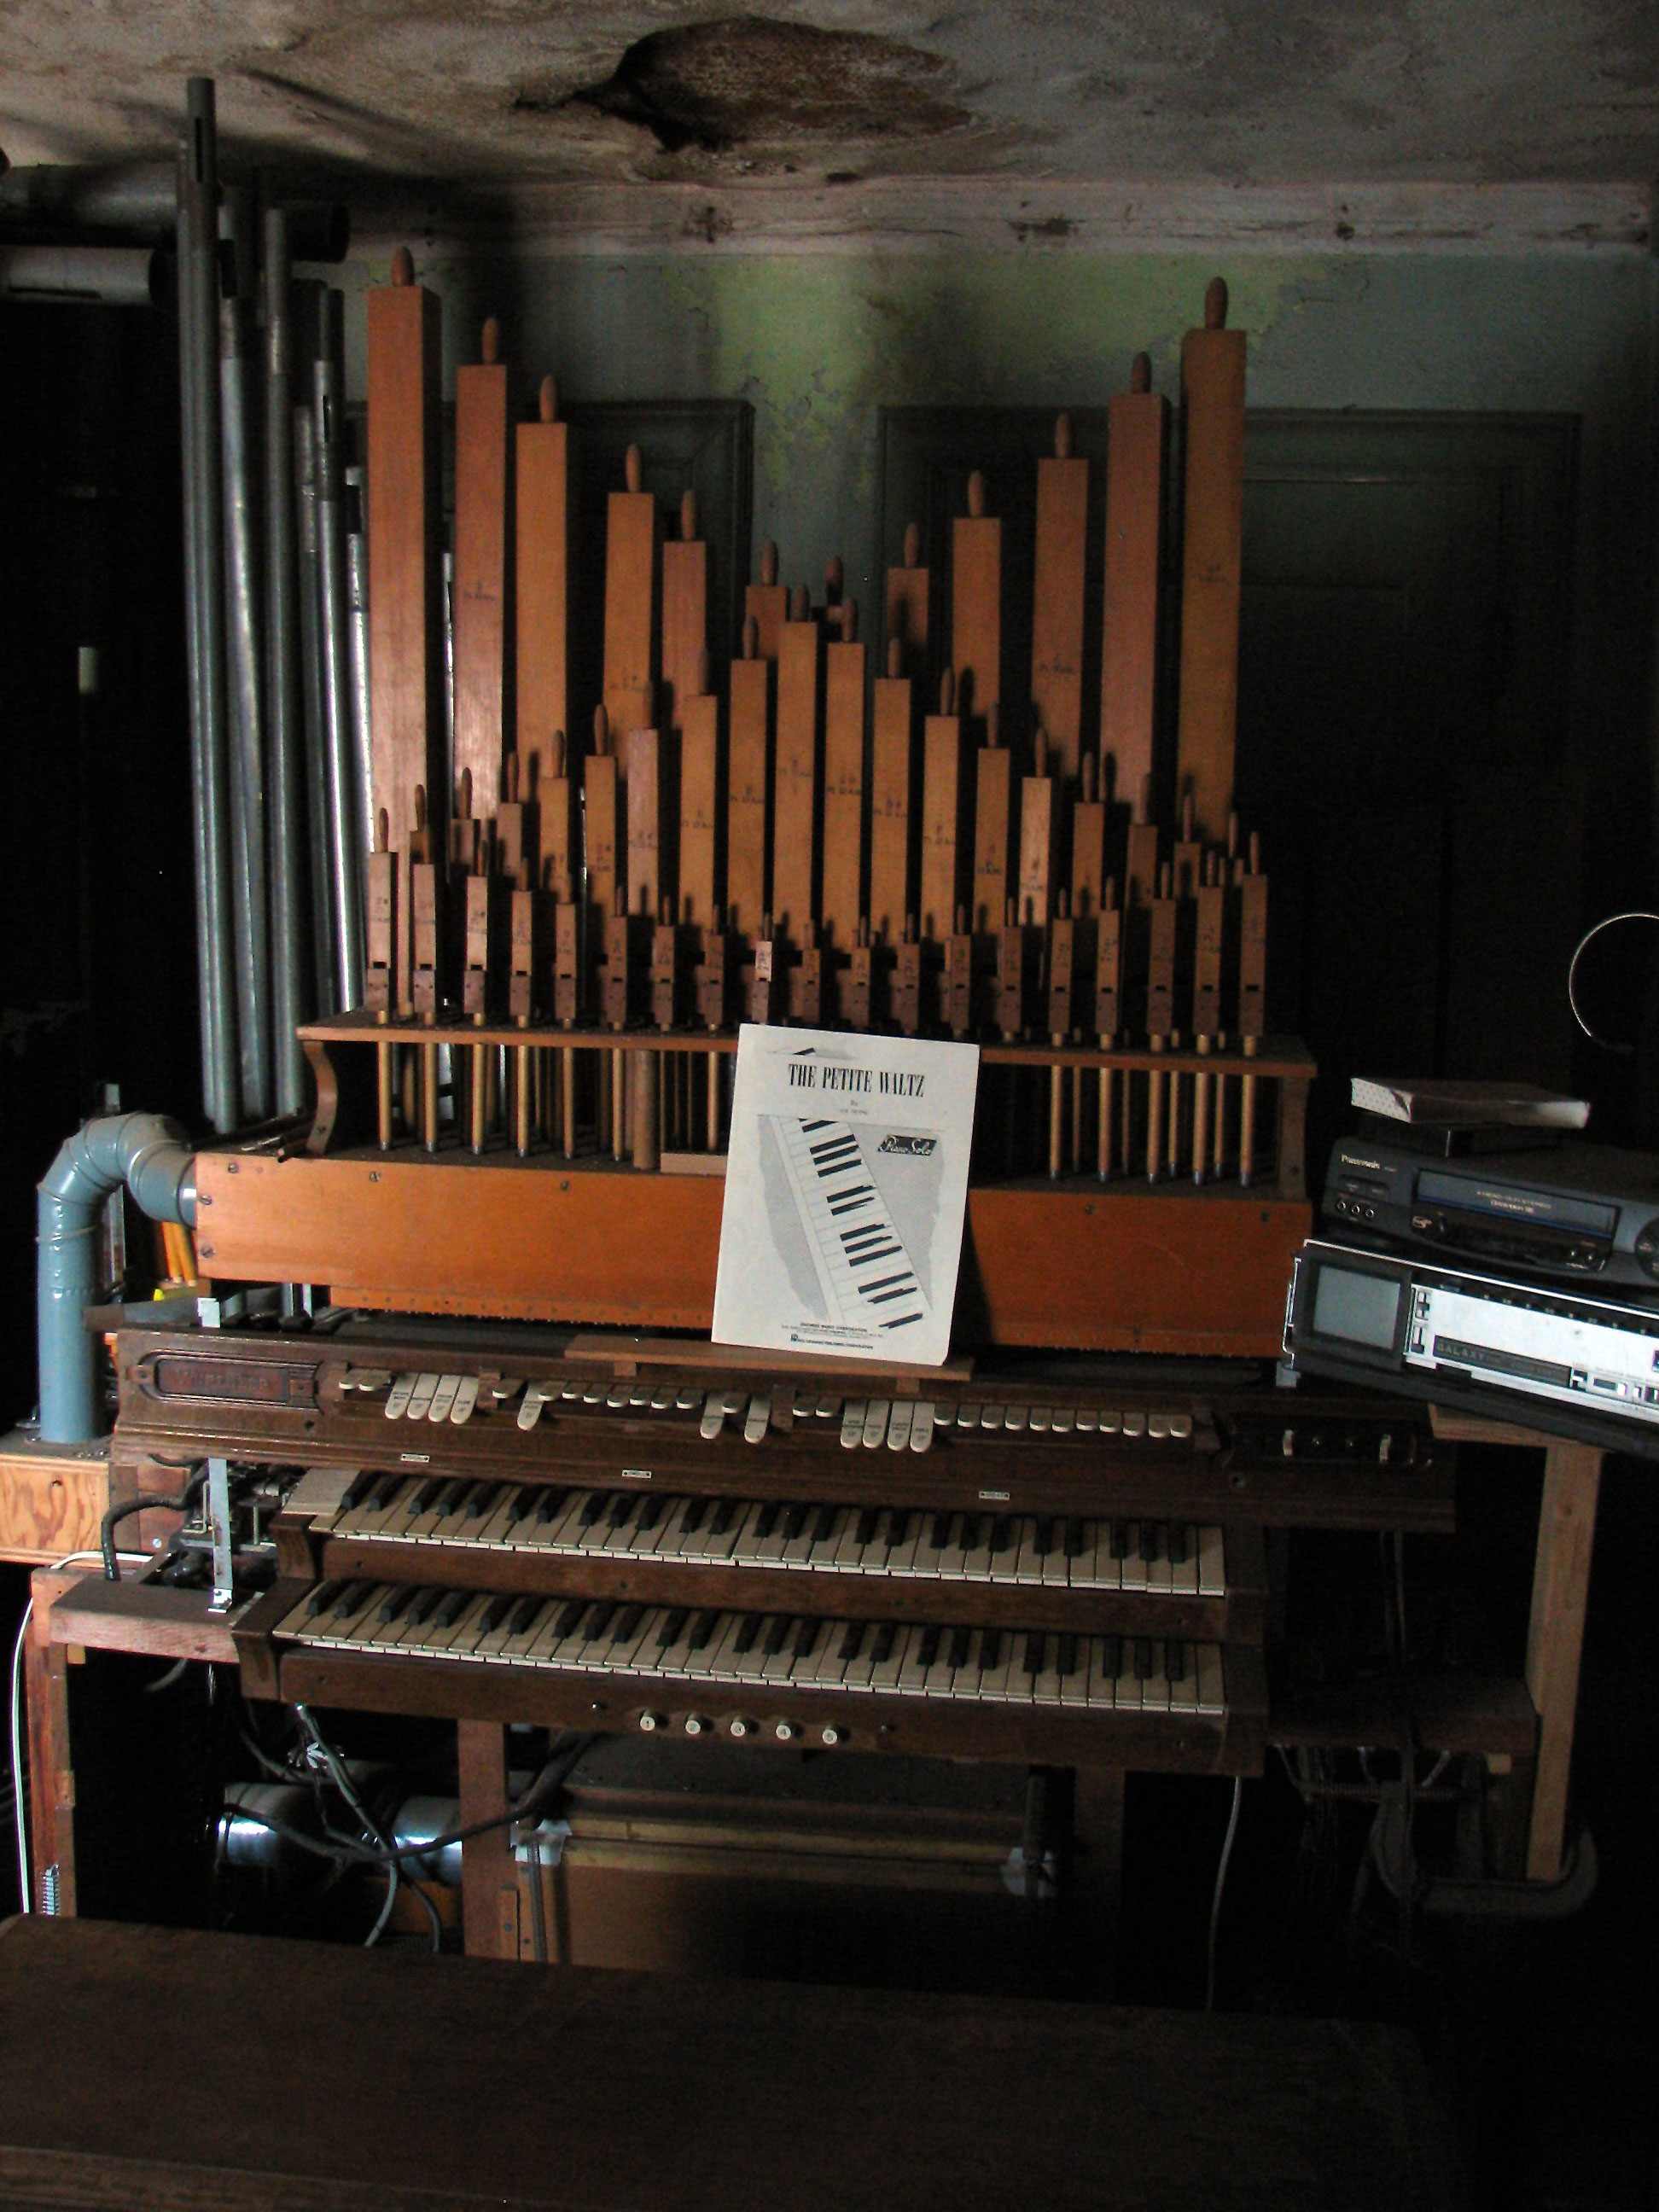 Click here to download a 1944 x 2592 JPG image showing the 2/3 Mighty Spohn Pipe Organ installed in the organ shop upstairs.